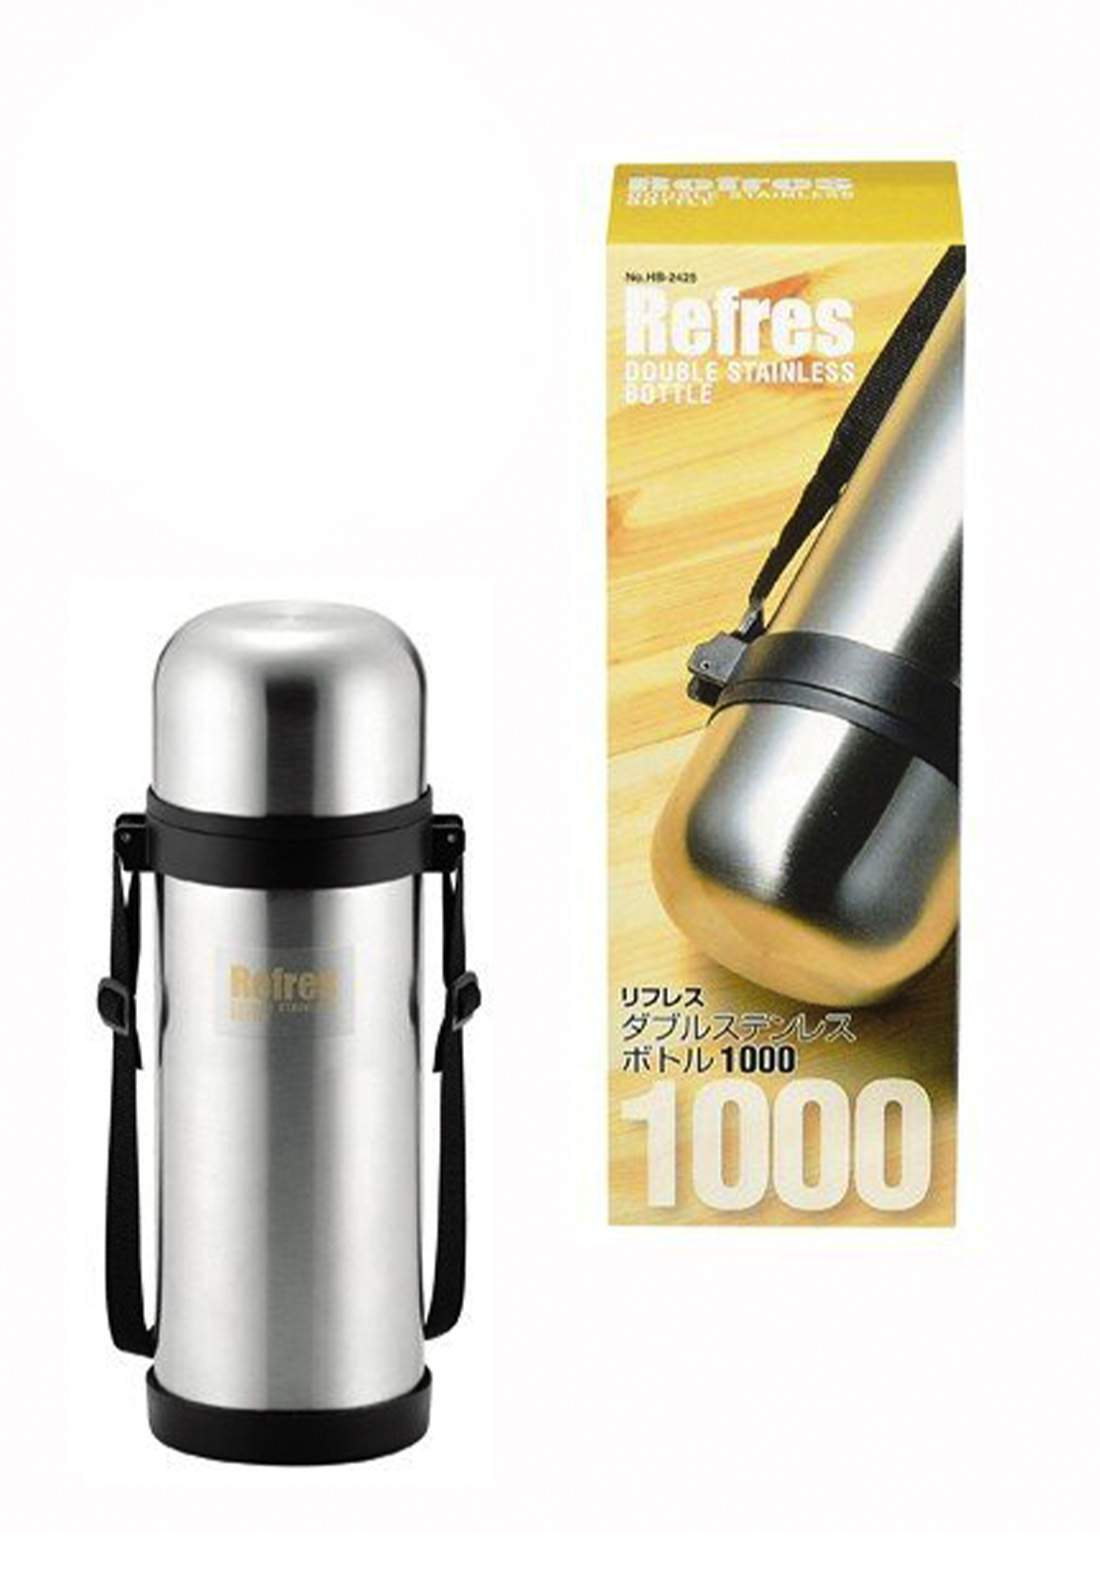 Pearl Metal HB-2425 Refres Wide Mouth Double Stainless Bottle 1000 ml ترمس حراري